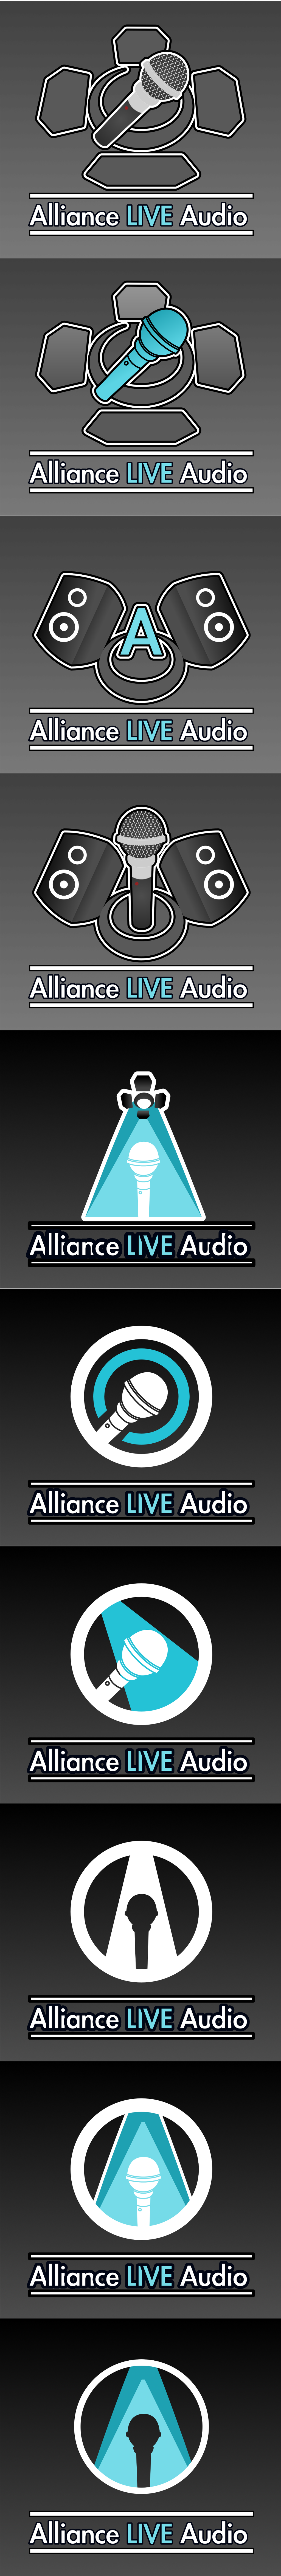 alliance_live_audio___round_2_by_leduc_g